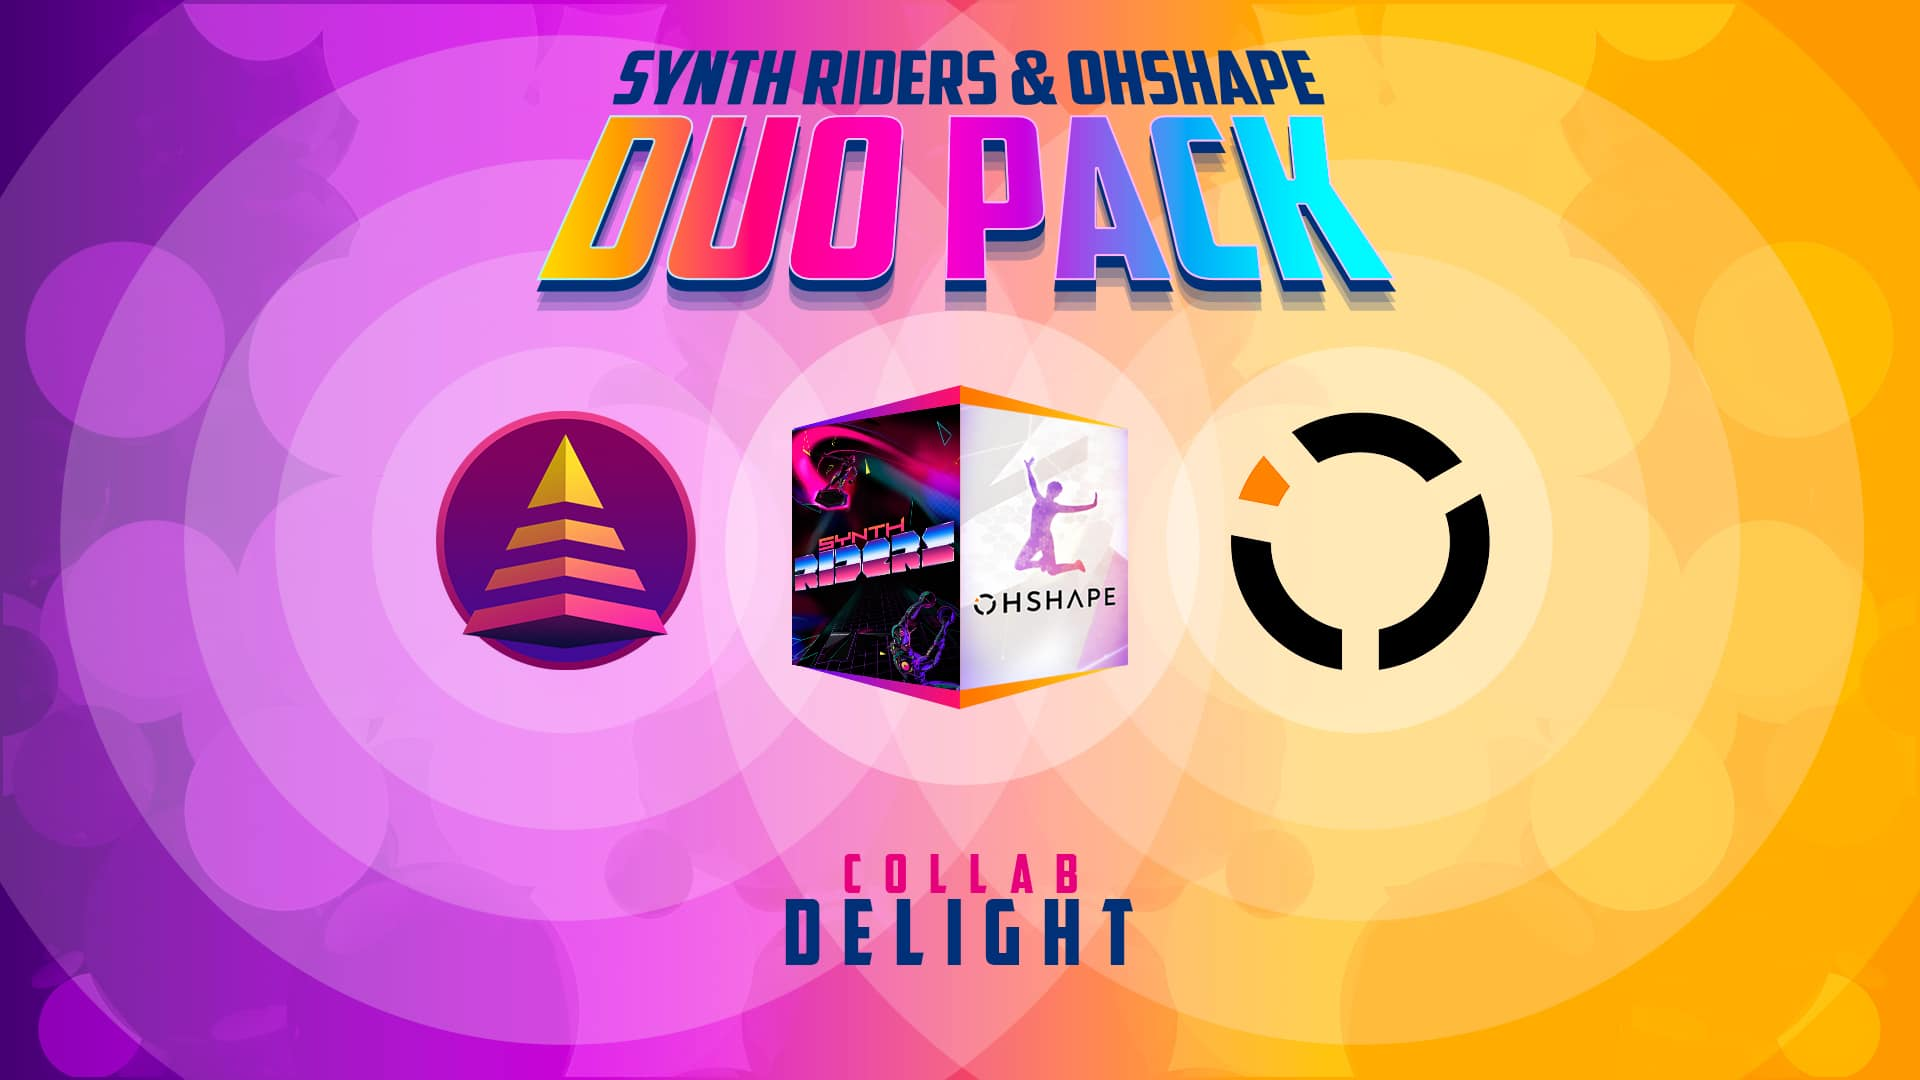 collab delight synth oh shape